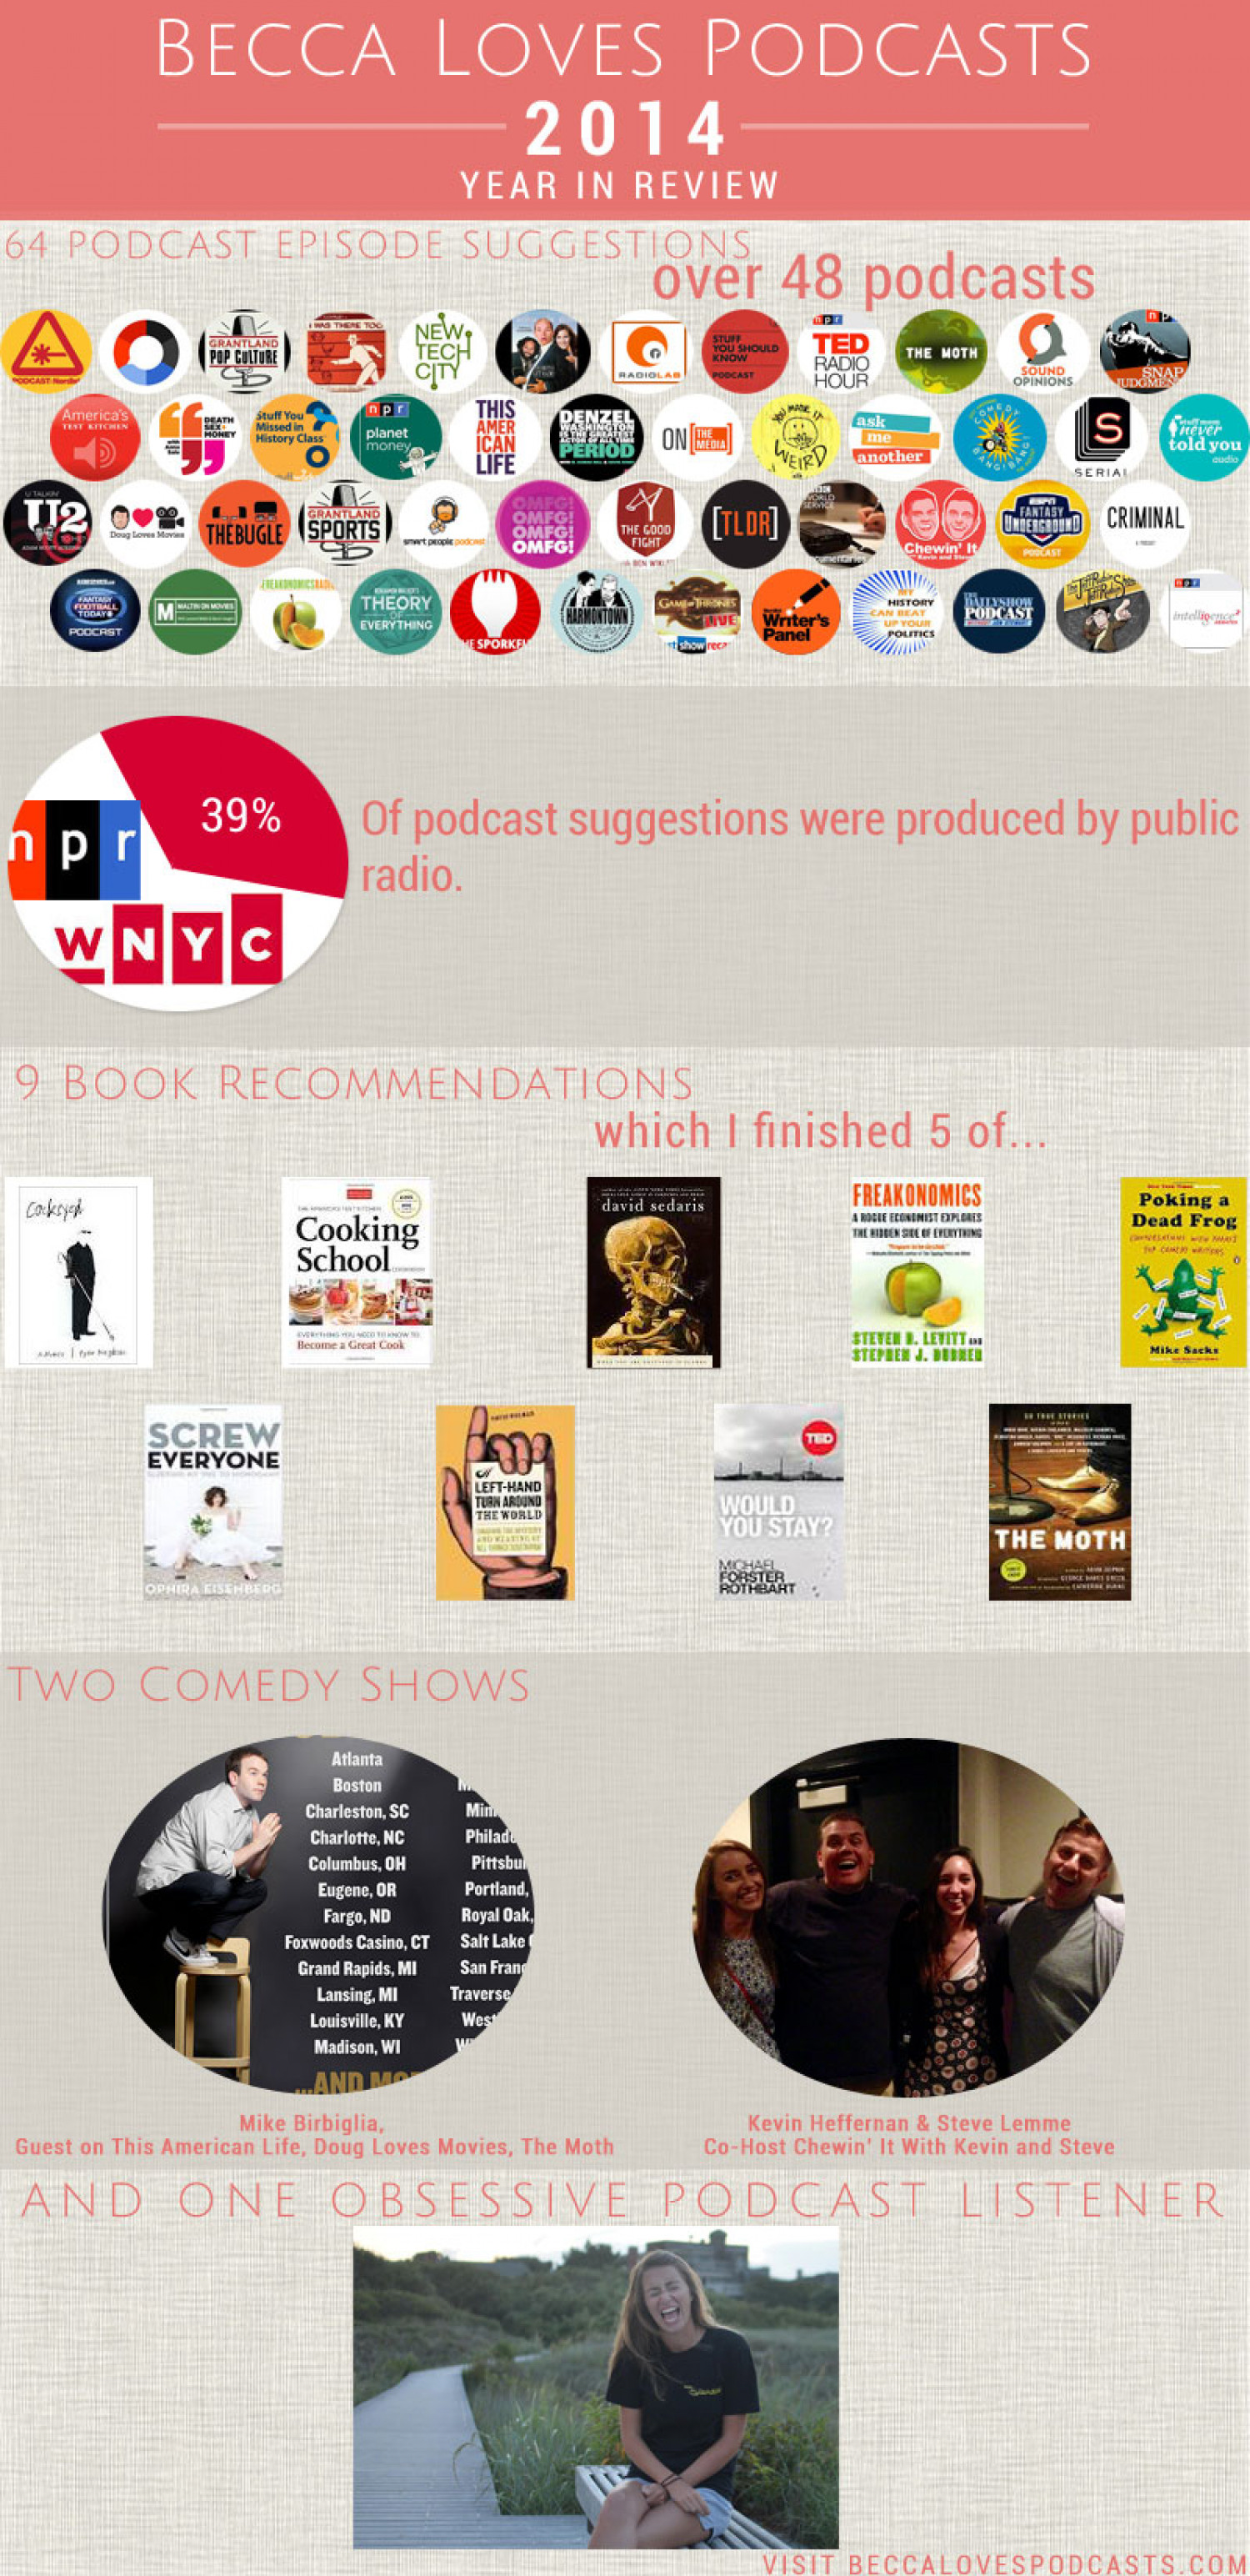 Becca Loves Podcasts 2014 Infographic